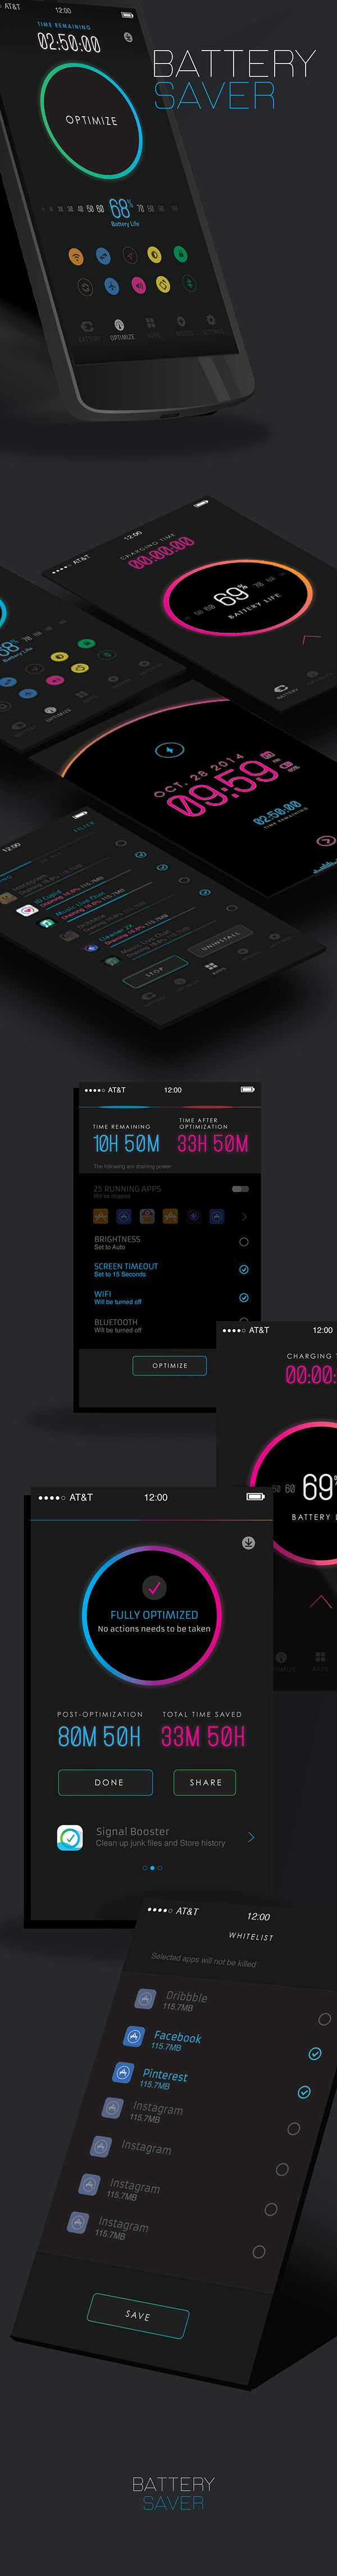 Battery saver #app #mobile #design #ux #ui. http://app-unit.ru/contacts.html